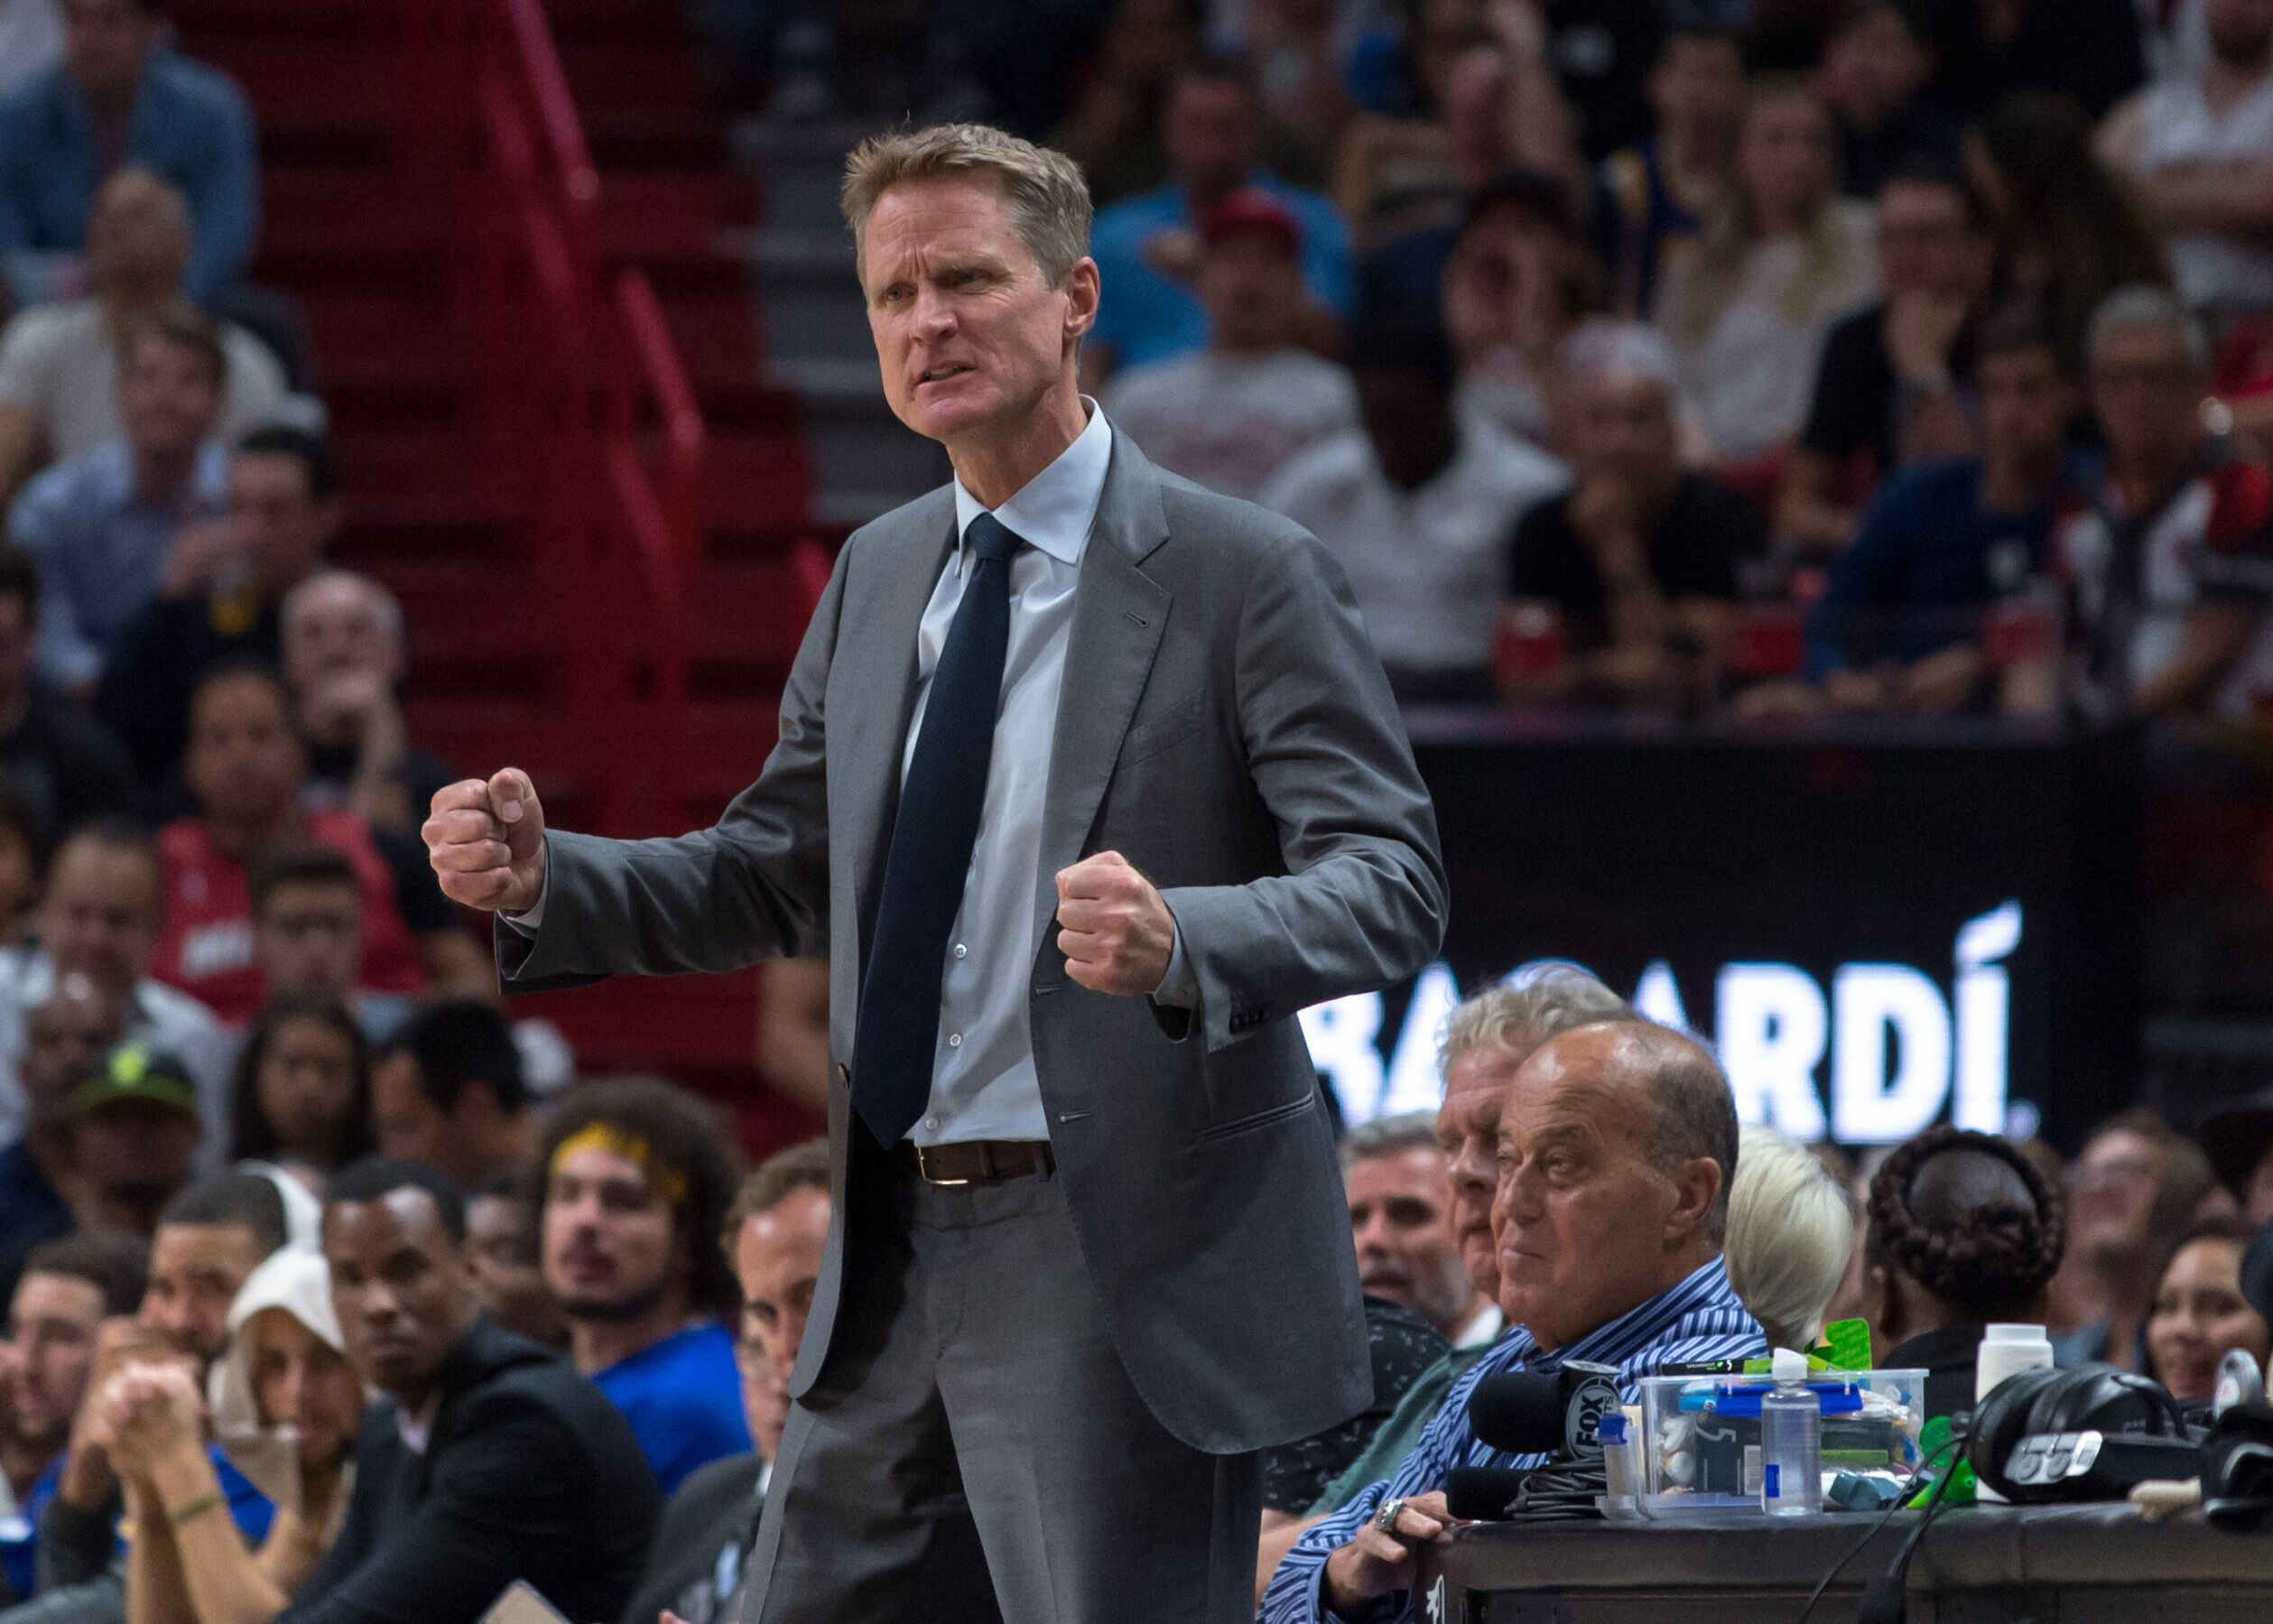 Nba Golden State Warriors At Miami Heat Steve Kerr Speaks Out On Muslim Ban